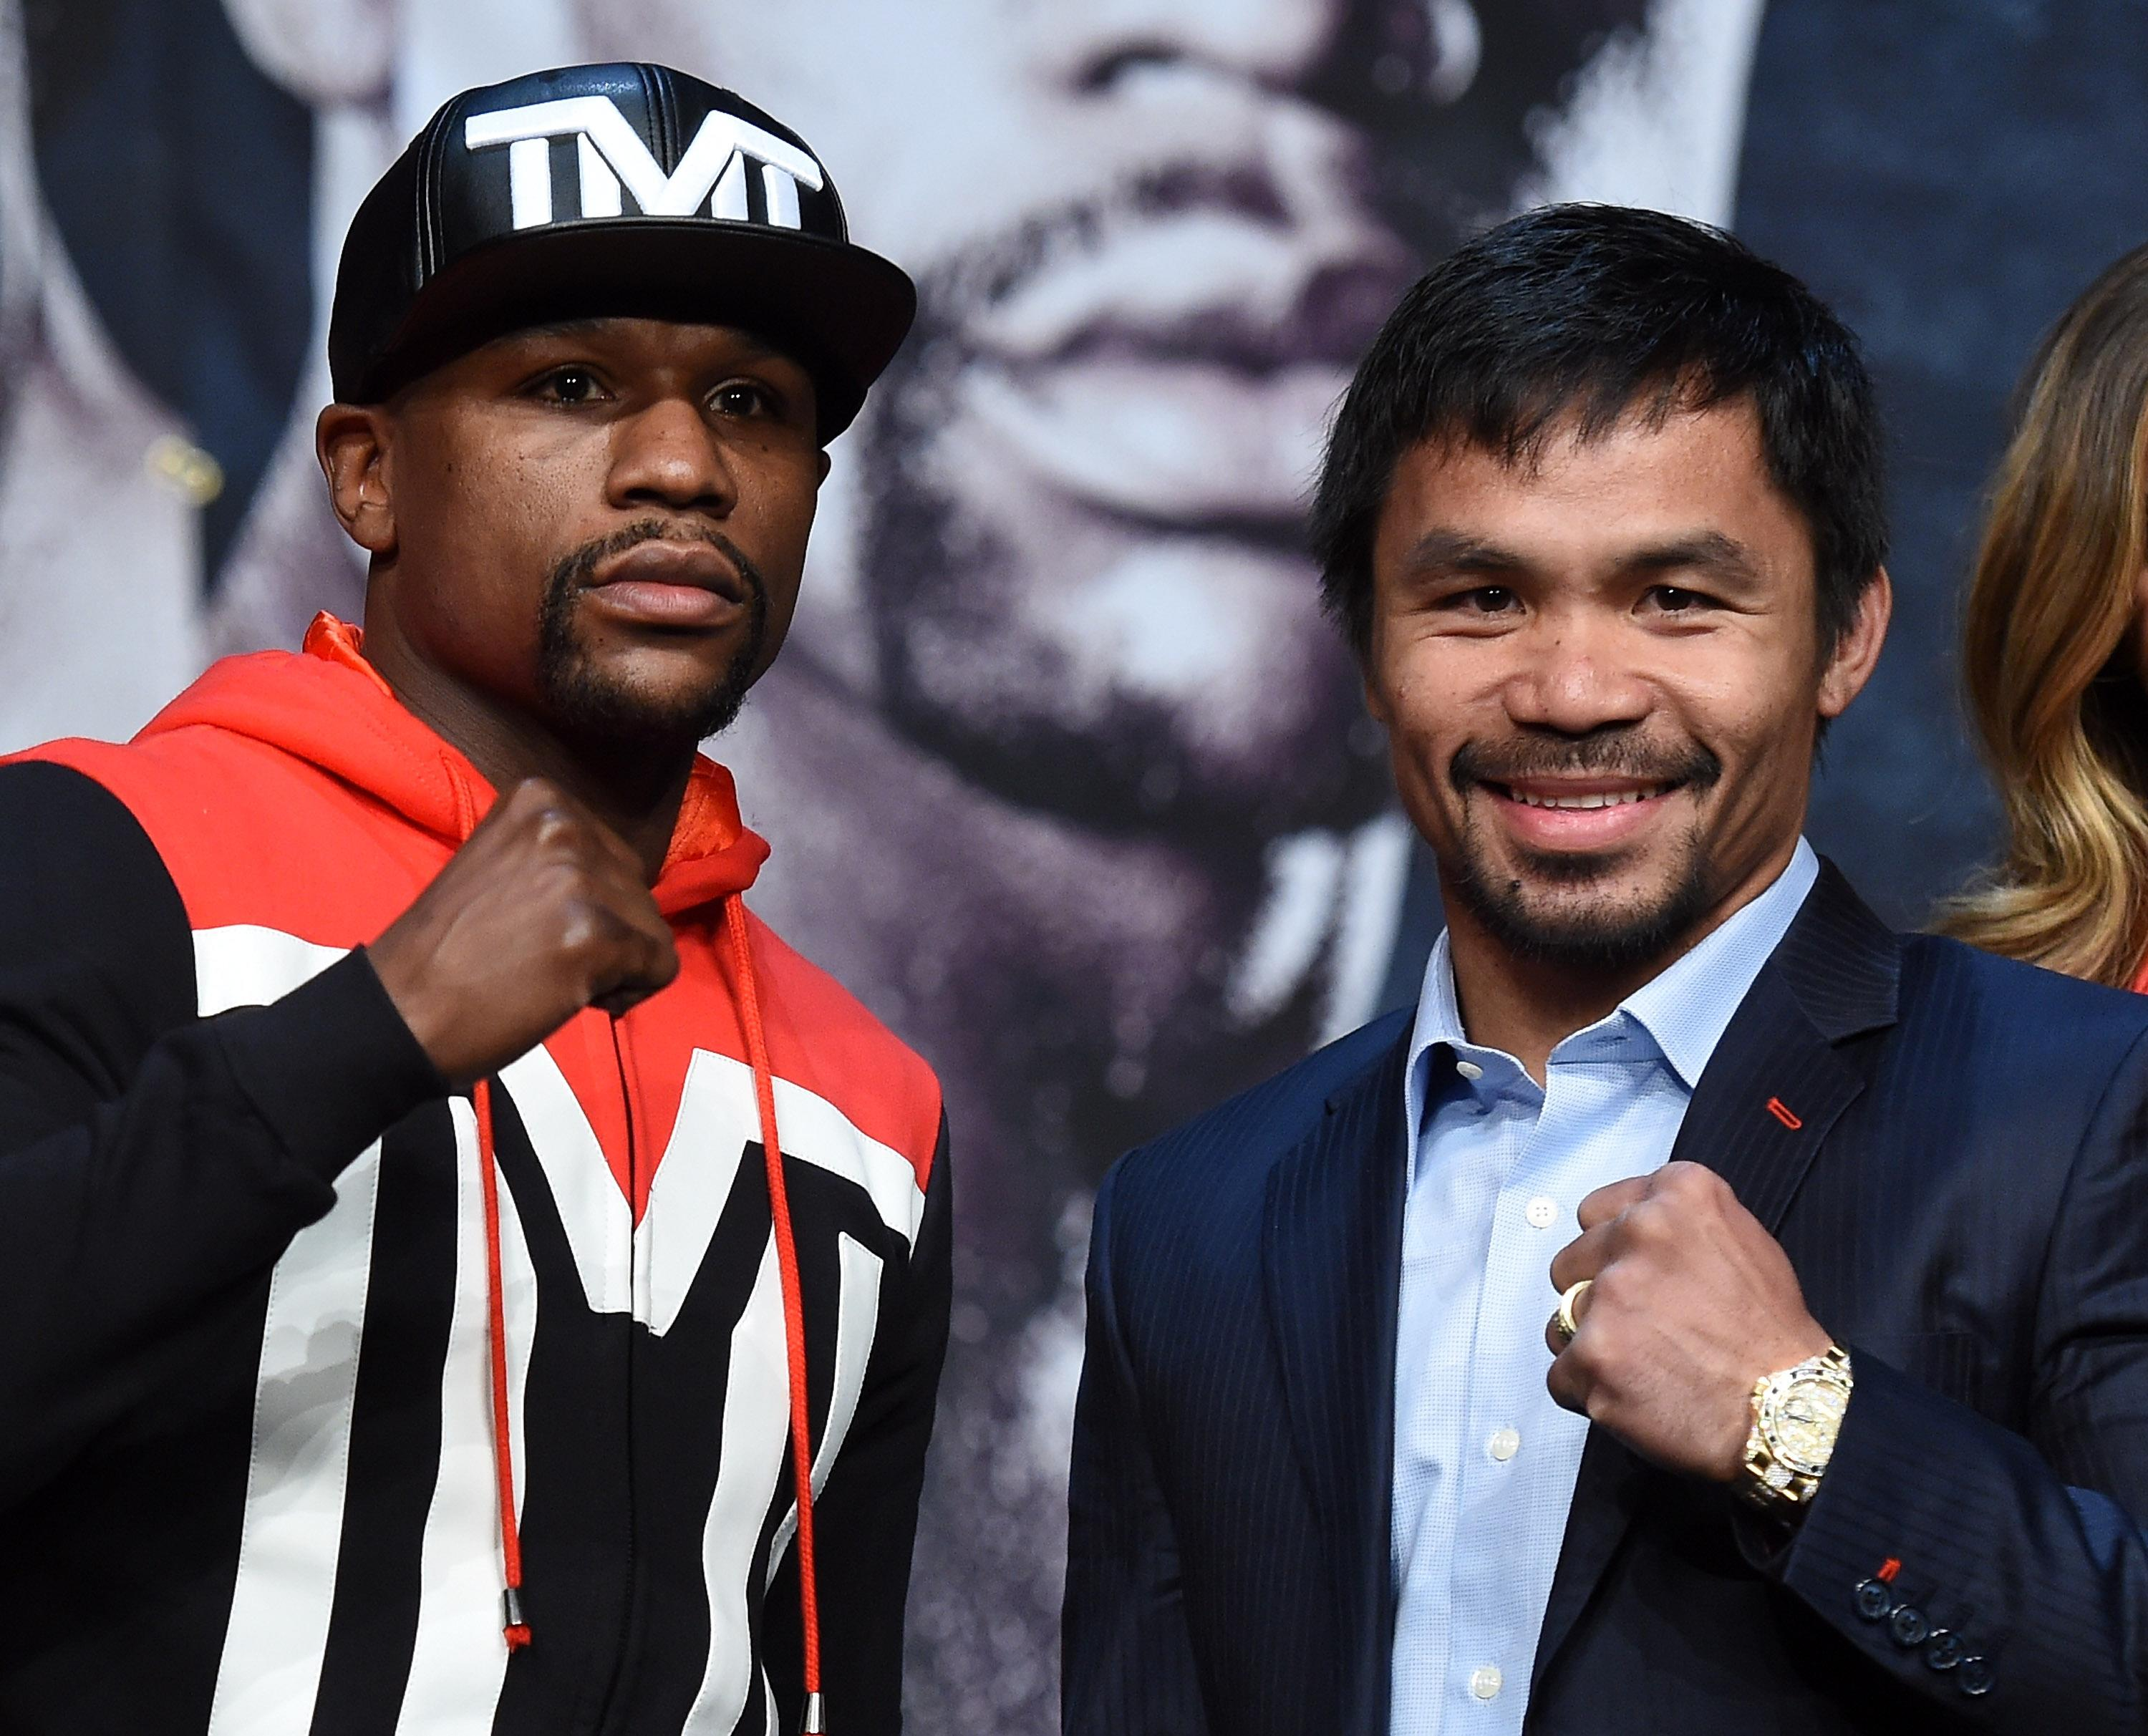 Pay-per-view problems delay start of Mayweather-Pacquiao fight